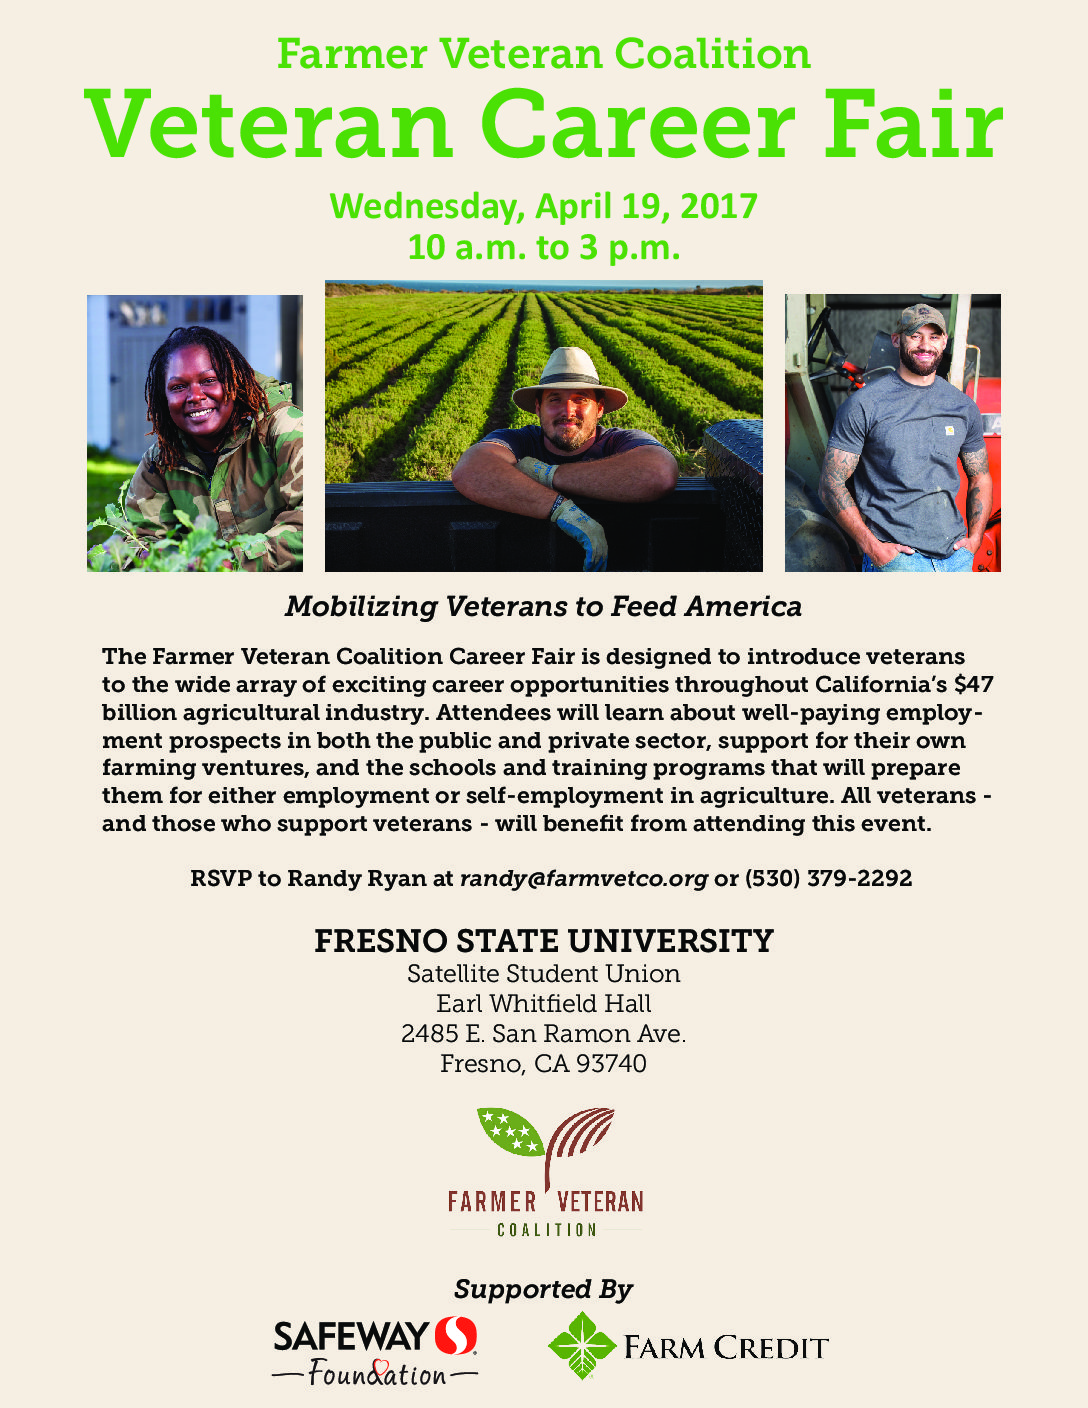 Farmer Veteran Coalition to Host Career Fair at CSU Fresno